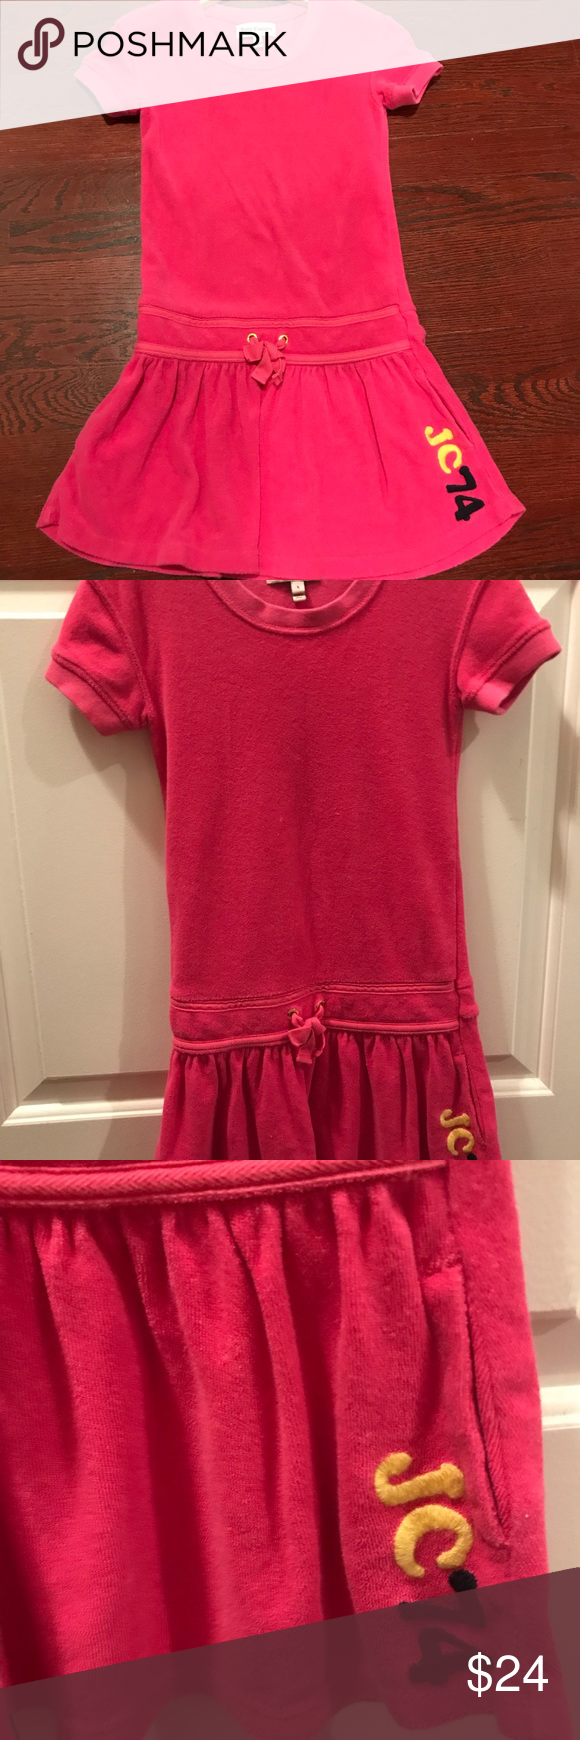 Juicy couture adorable terry dress girls years juicy couture